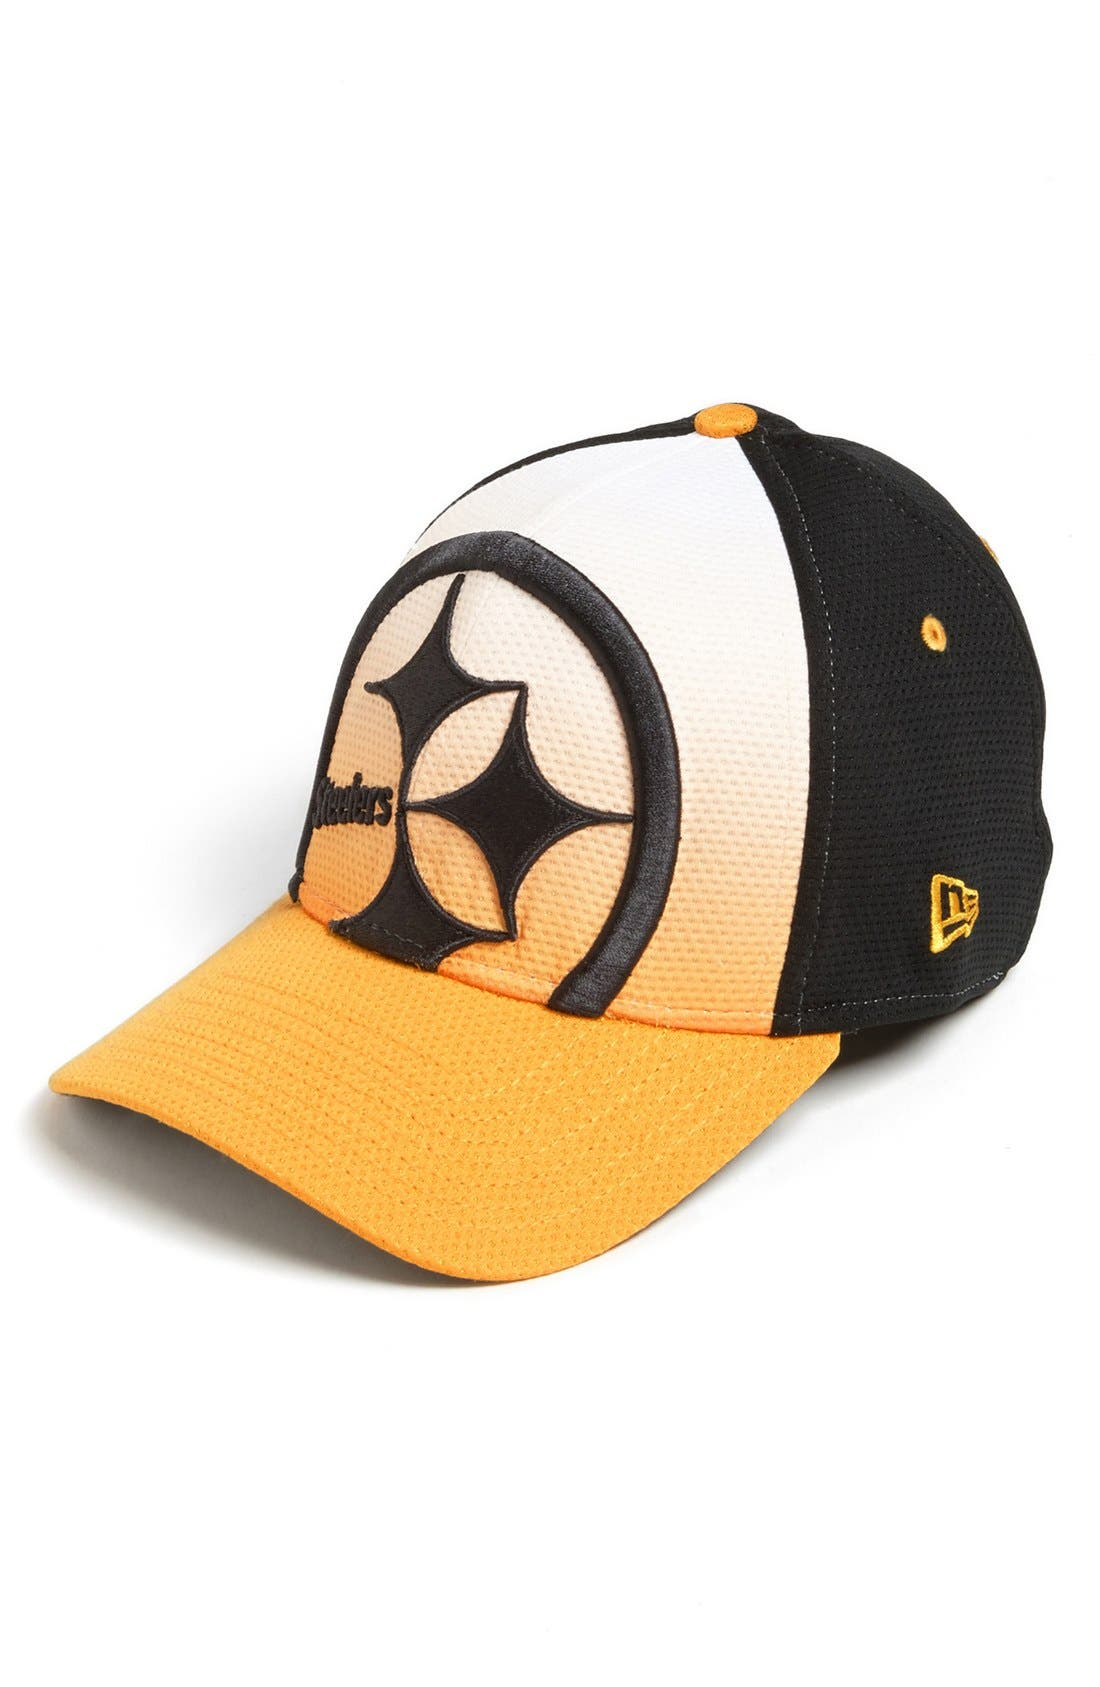 Alternate Image 1 Selected - New Era Cap 'Gradation - Pittsburgh Steelers' Baseball Cap